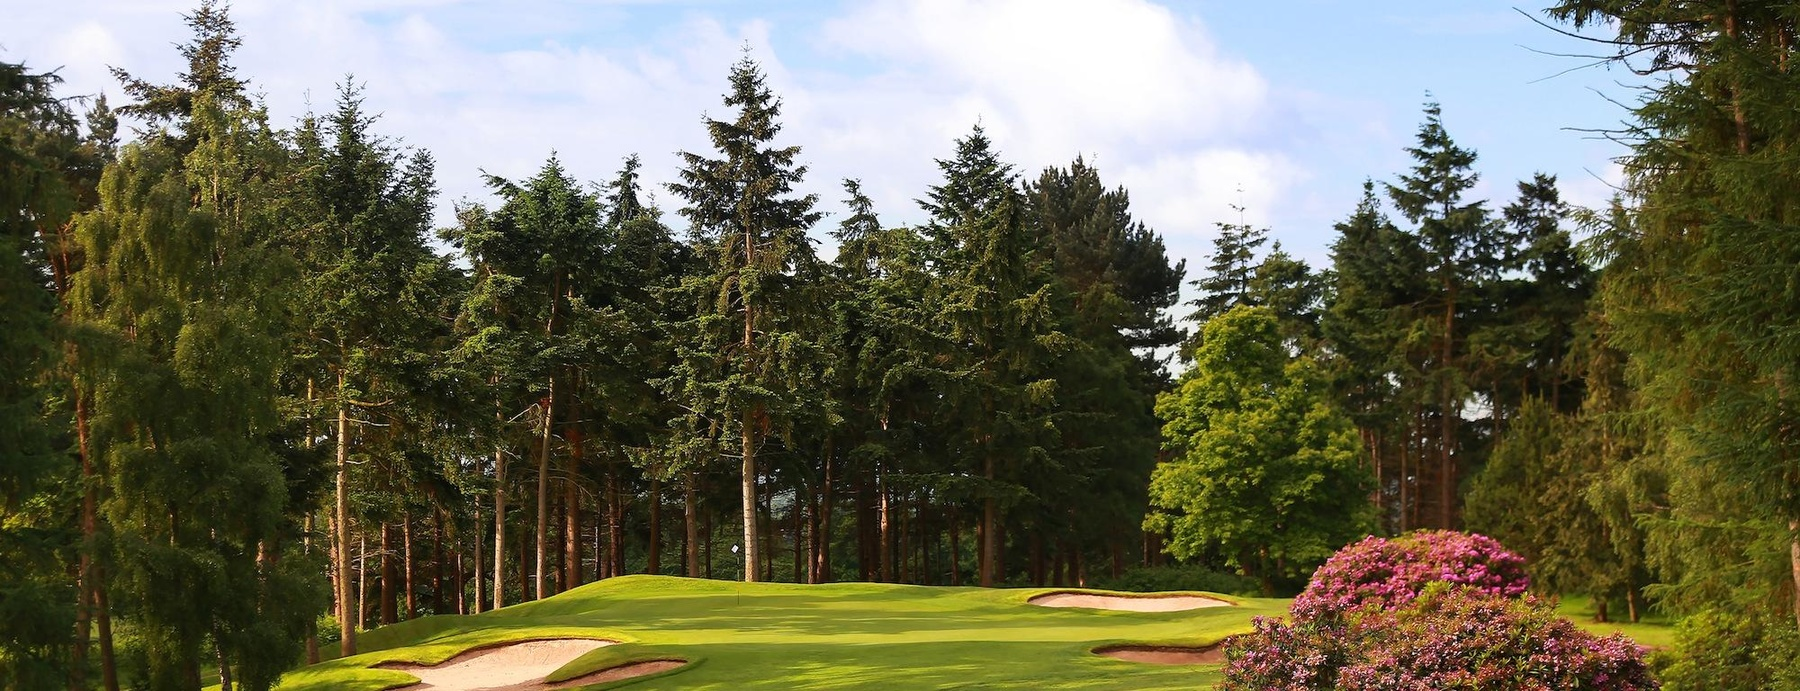 Carden Park crop17th-Cheshire-golf-course